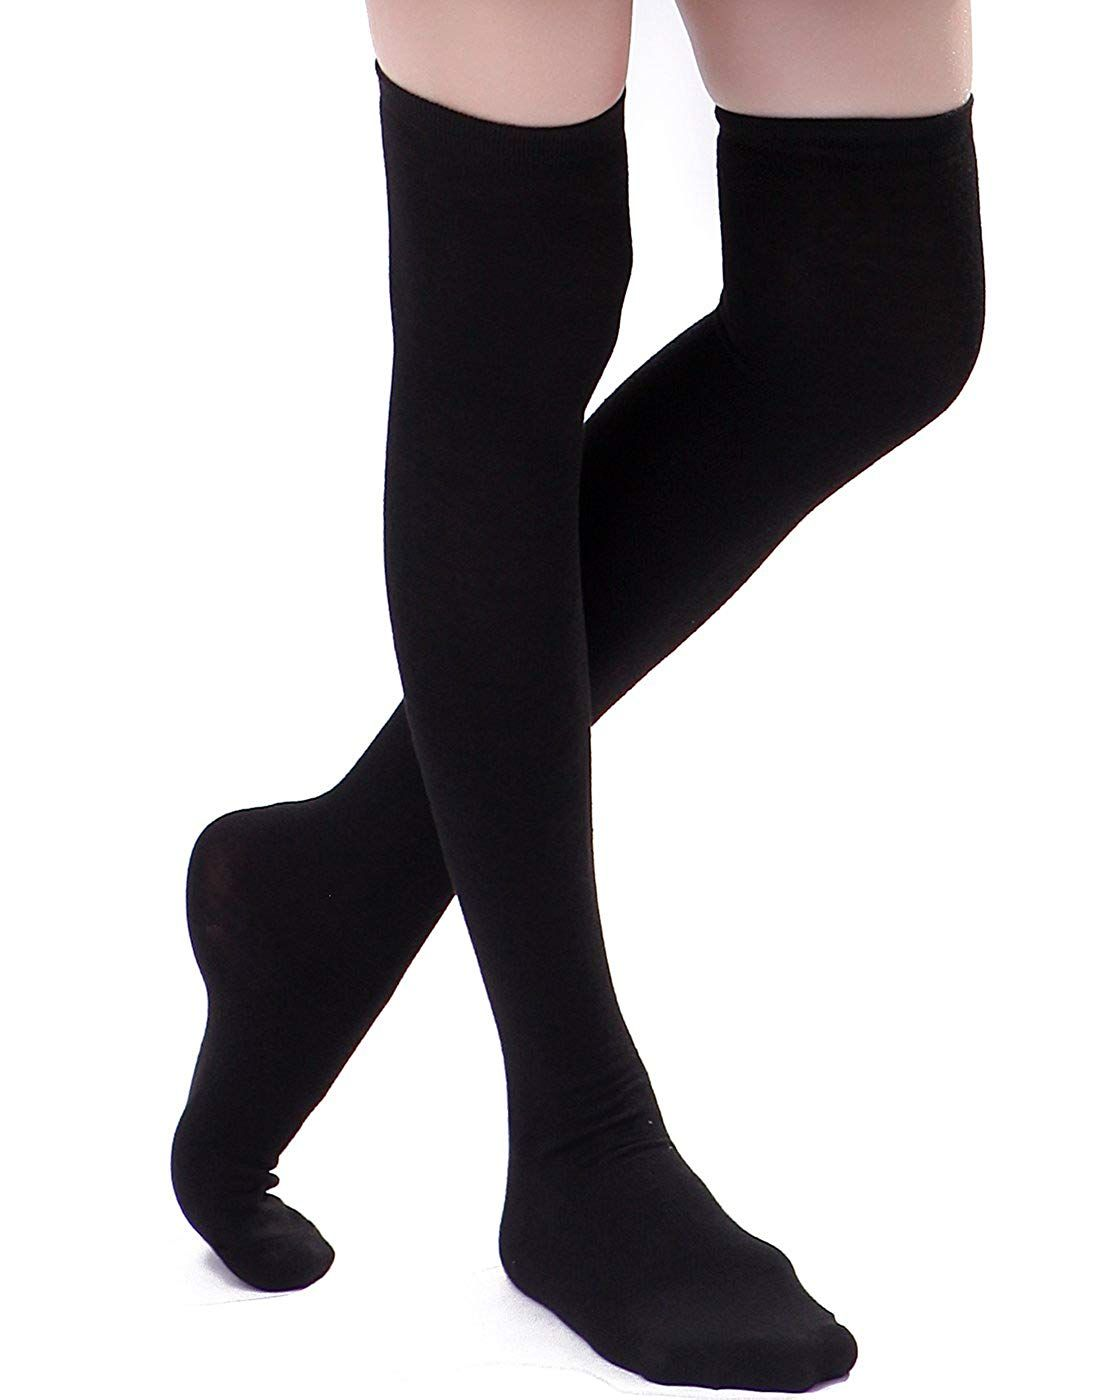 dfcf25092 HDE Women s Knee High Stockings Solid Color Opaque Cotton Spandex Fashion  Socks at Amazon Women s Clothing store